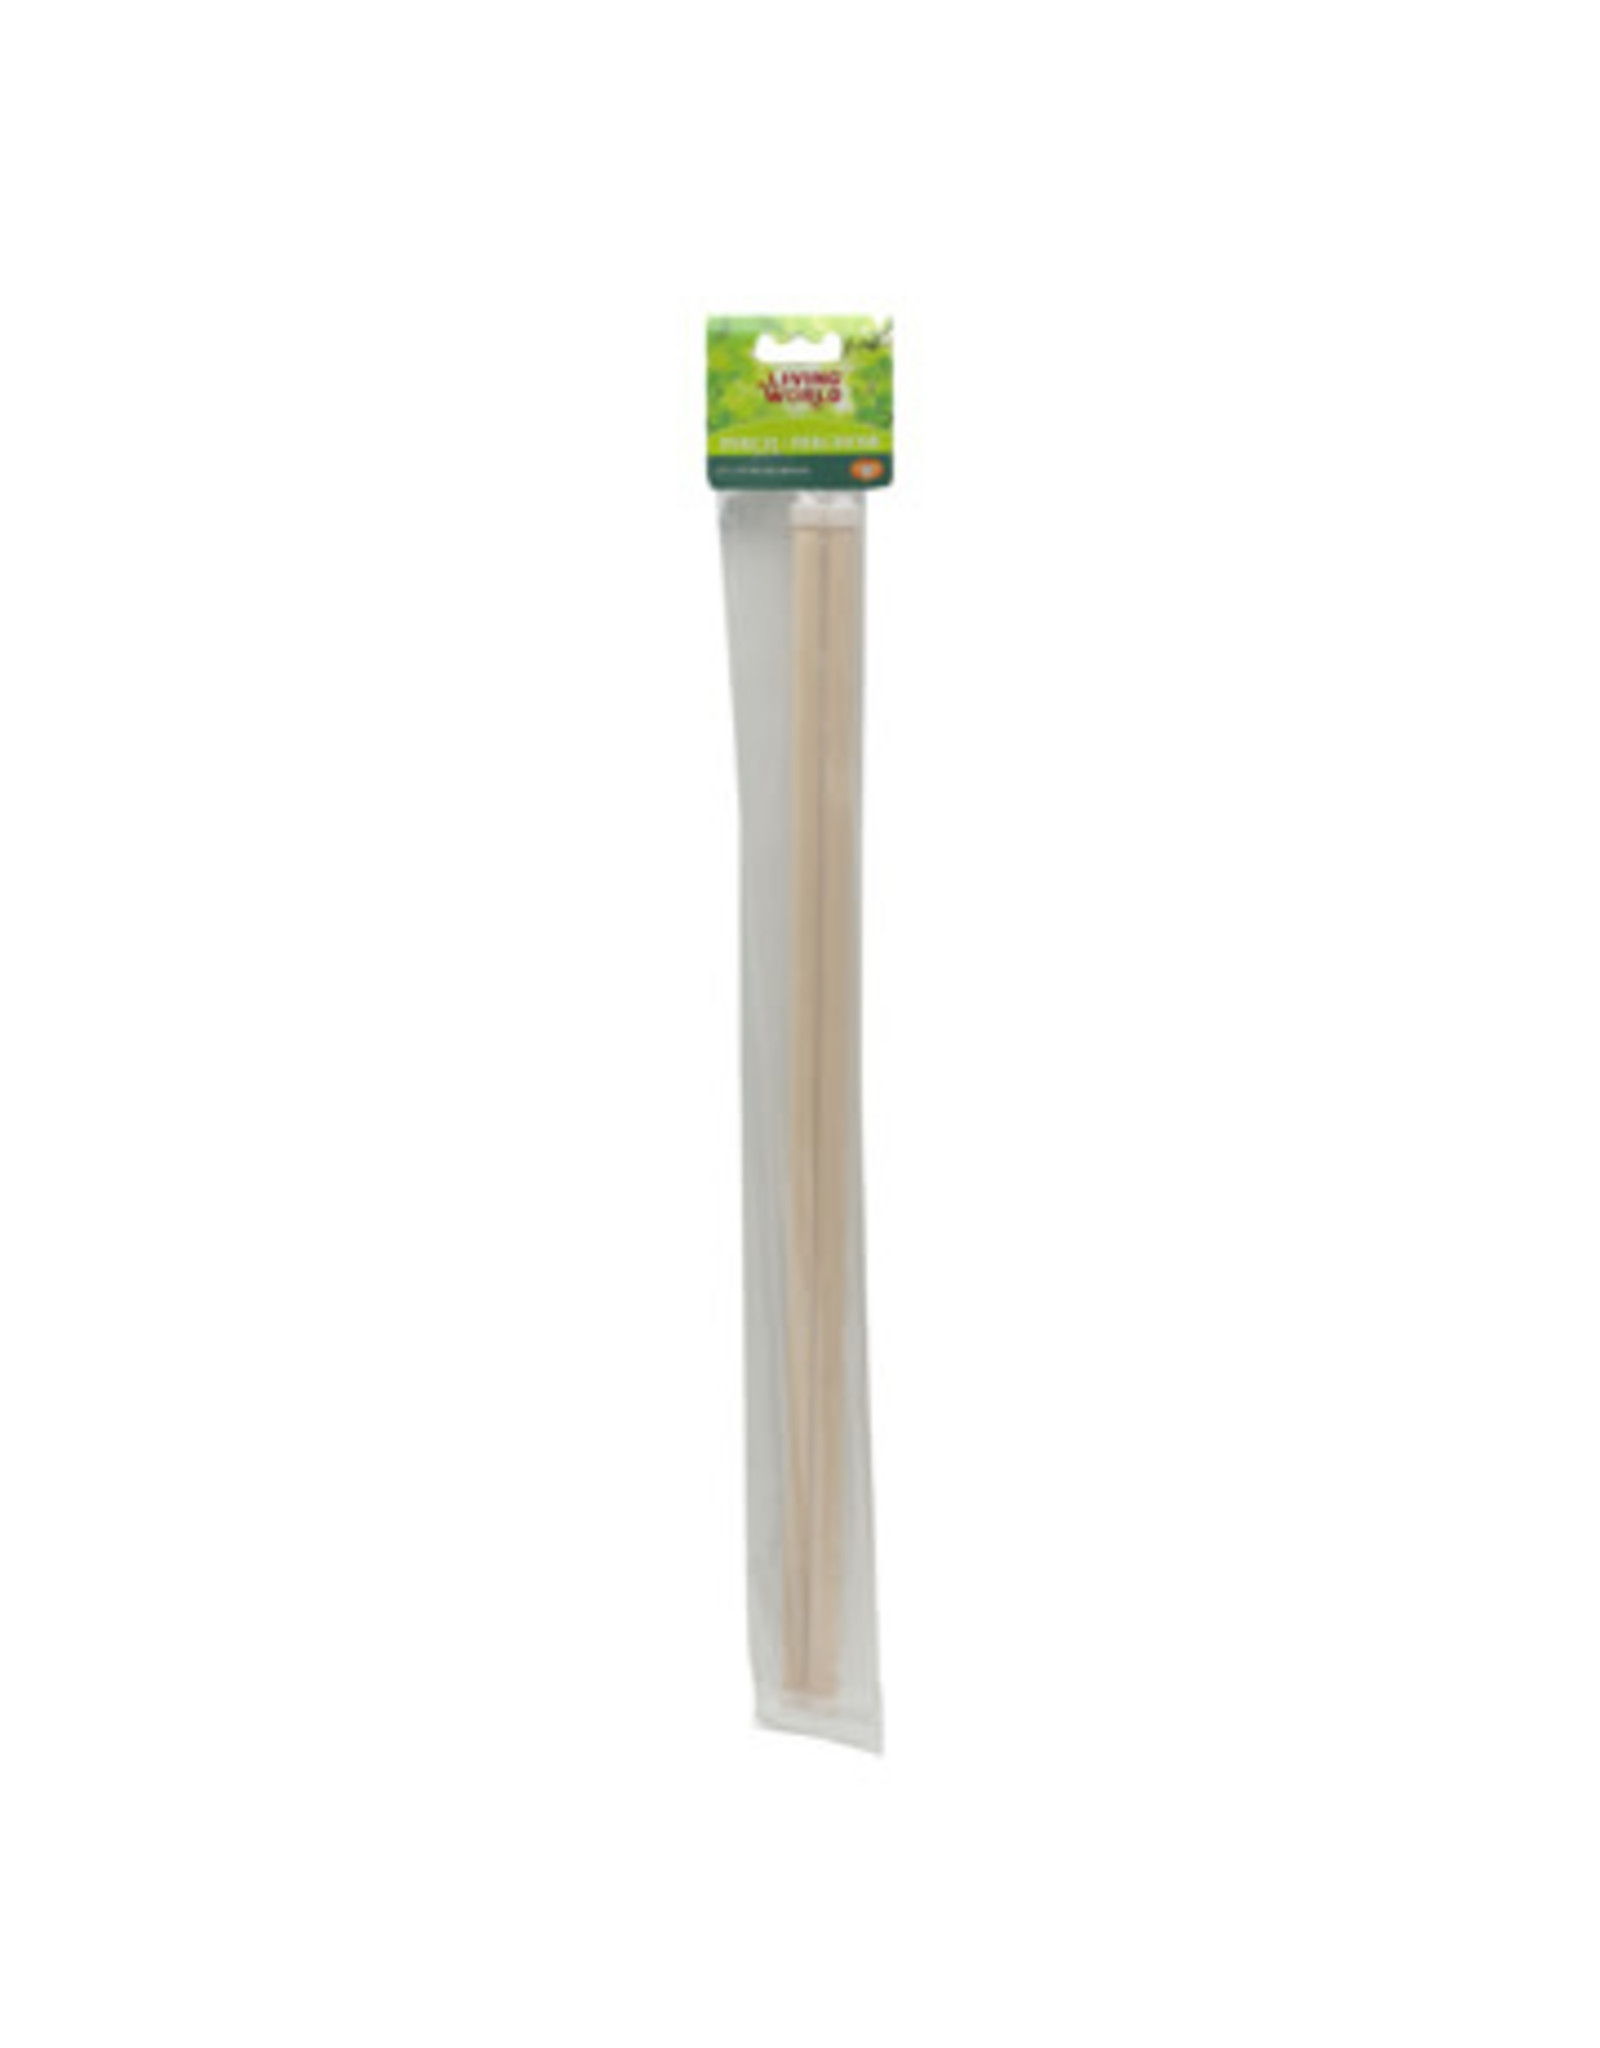 Living World Living World Wooden Perches - 48 cm (19 in) - 2 pack